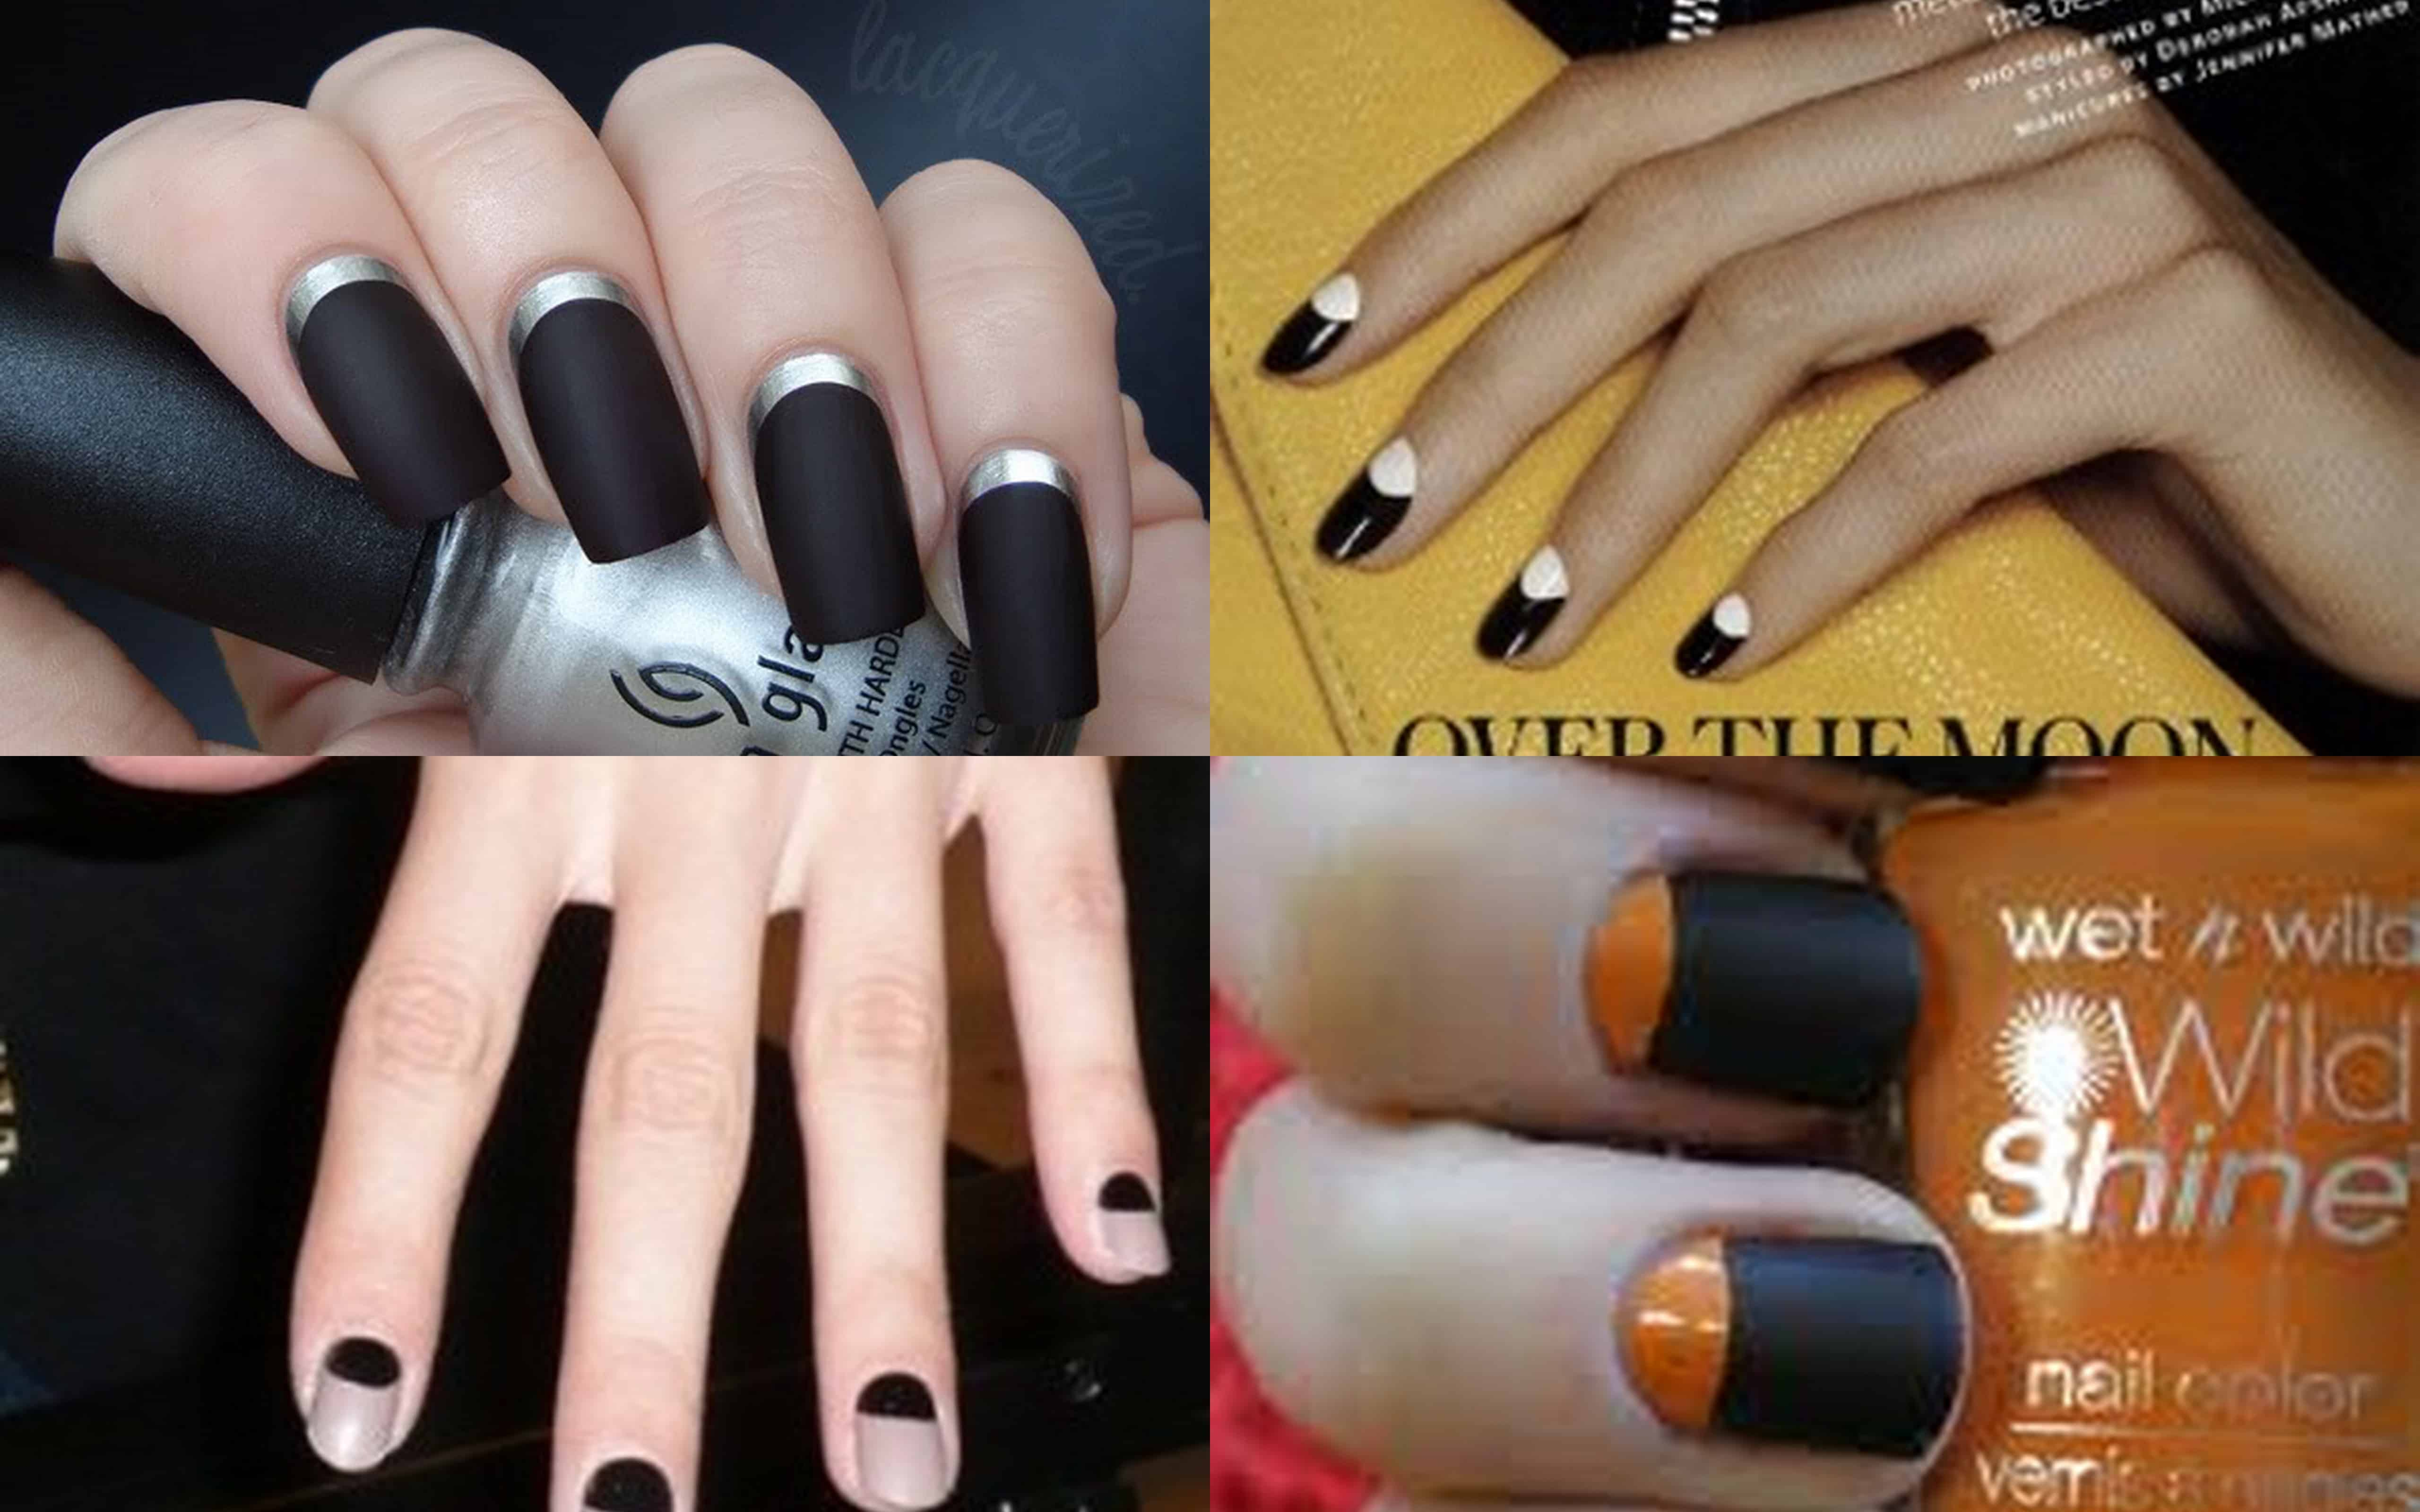 Fall winter 2011 – 2012 Trend Alert: Moon Manicure is Hot this Season